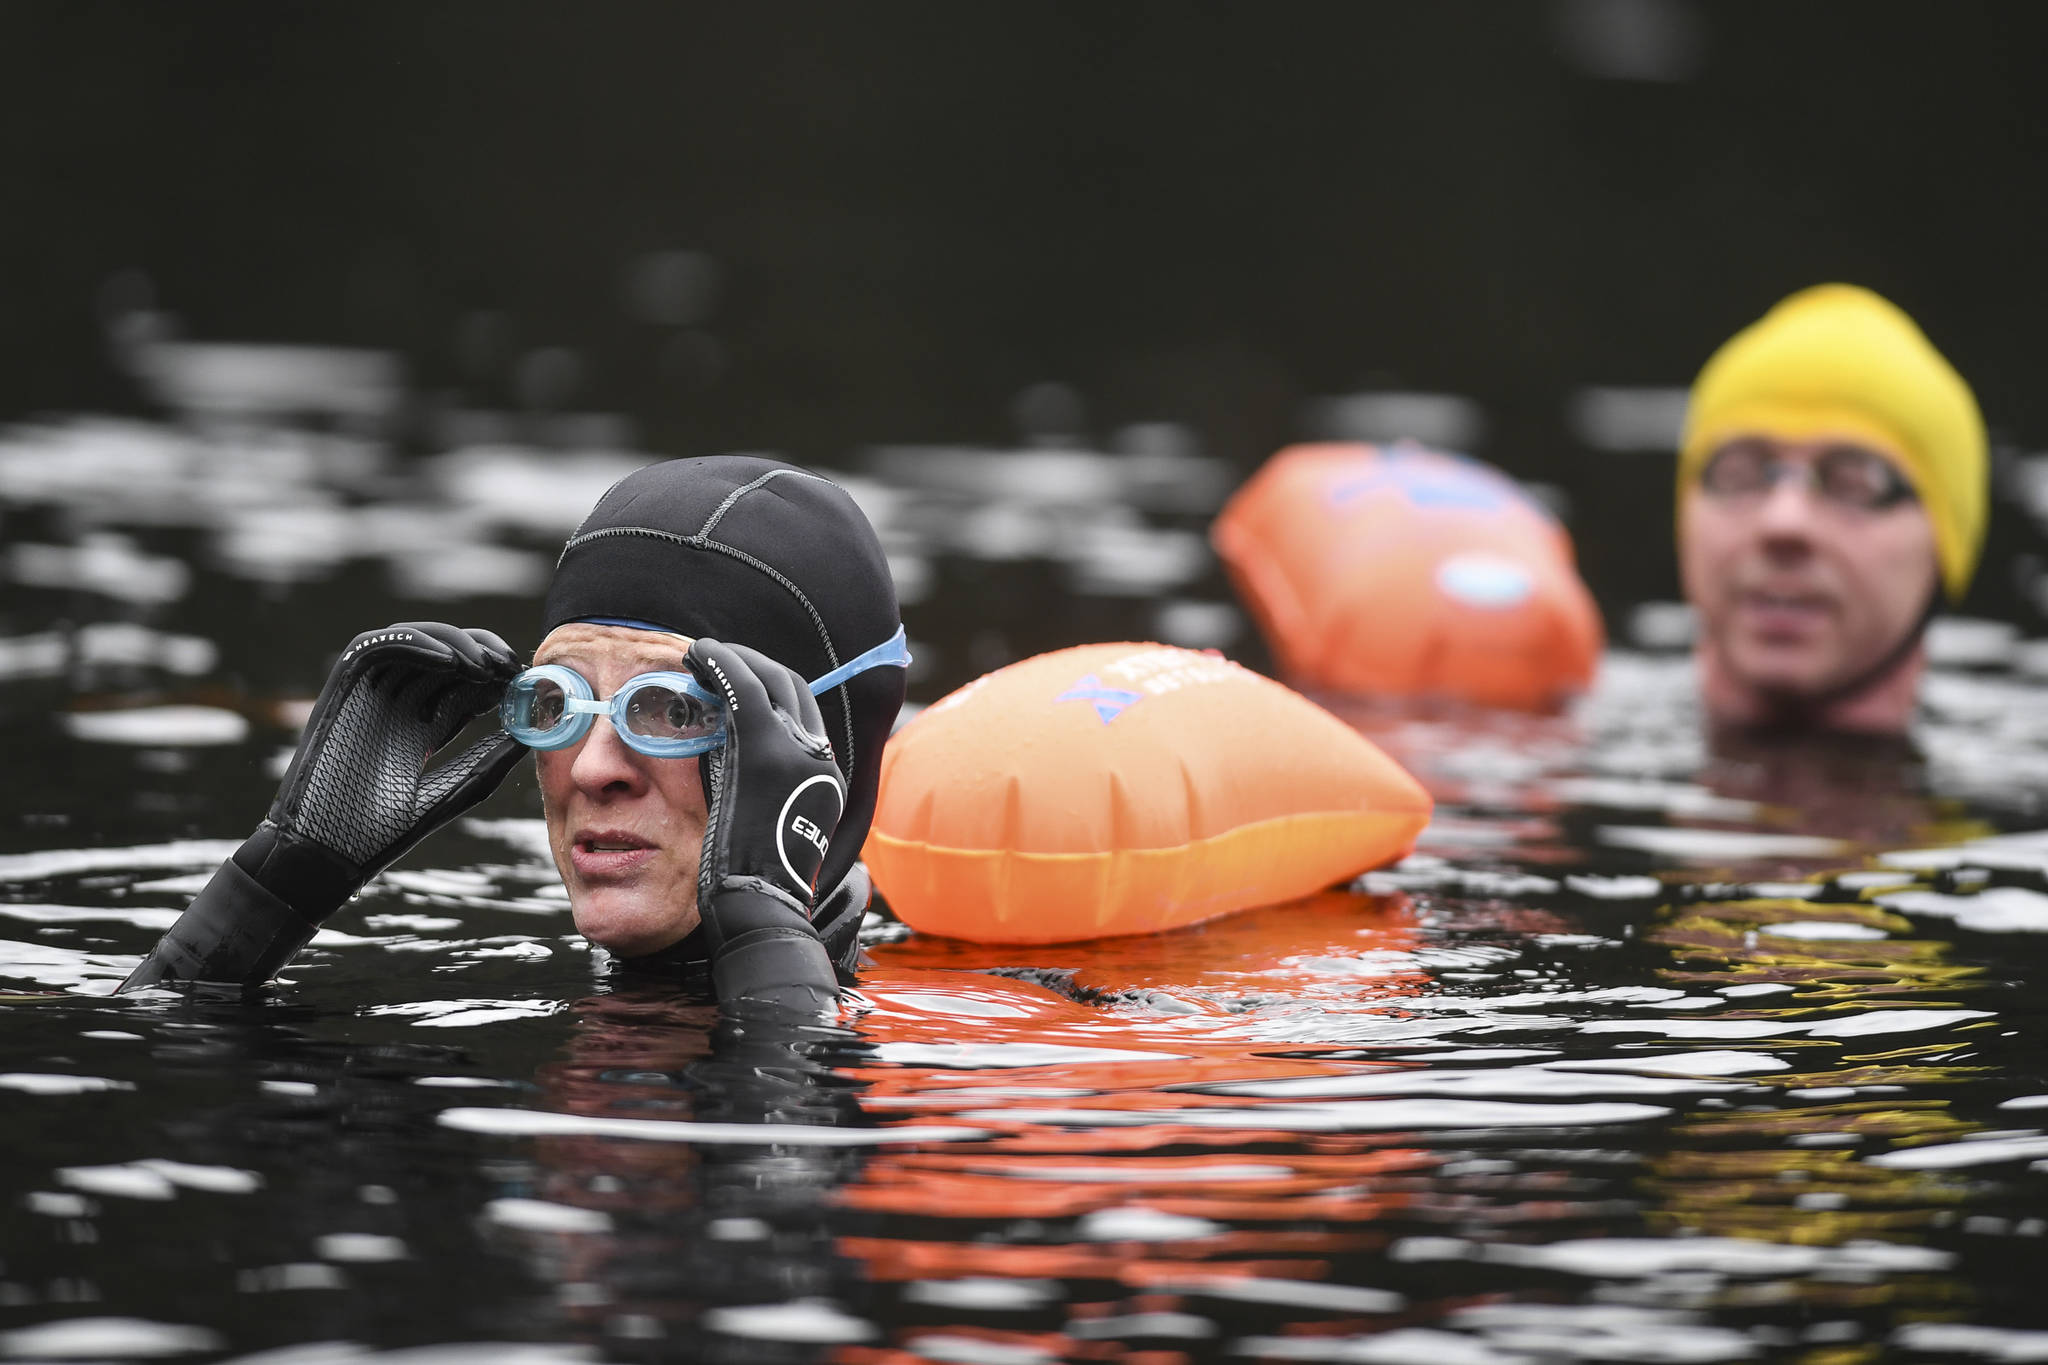 Serenity in the dark: How Auke Lake became a go-to swimming destination